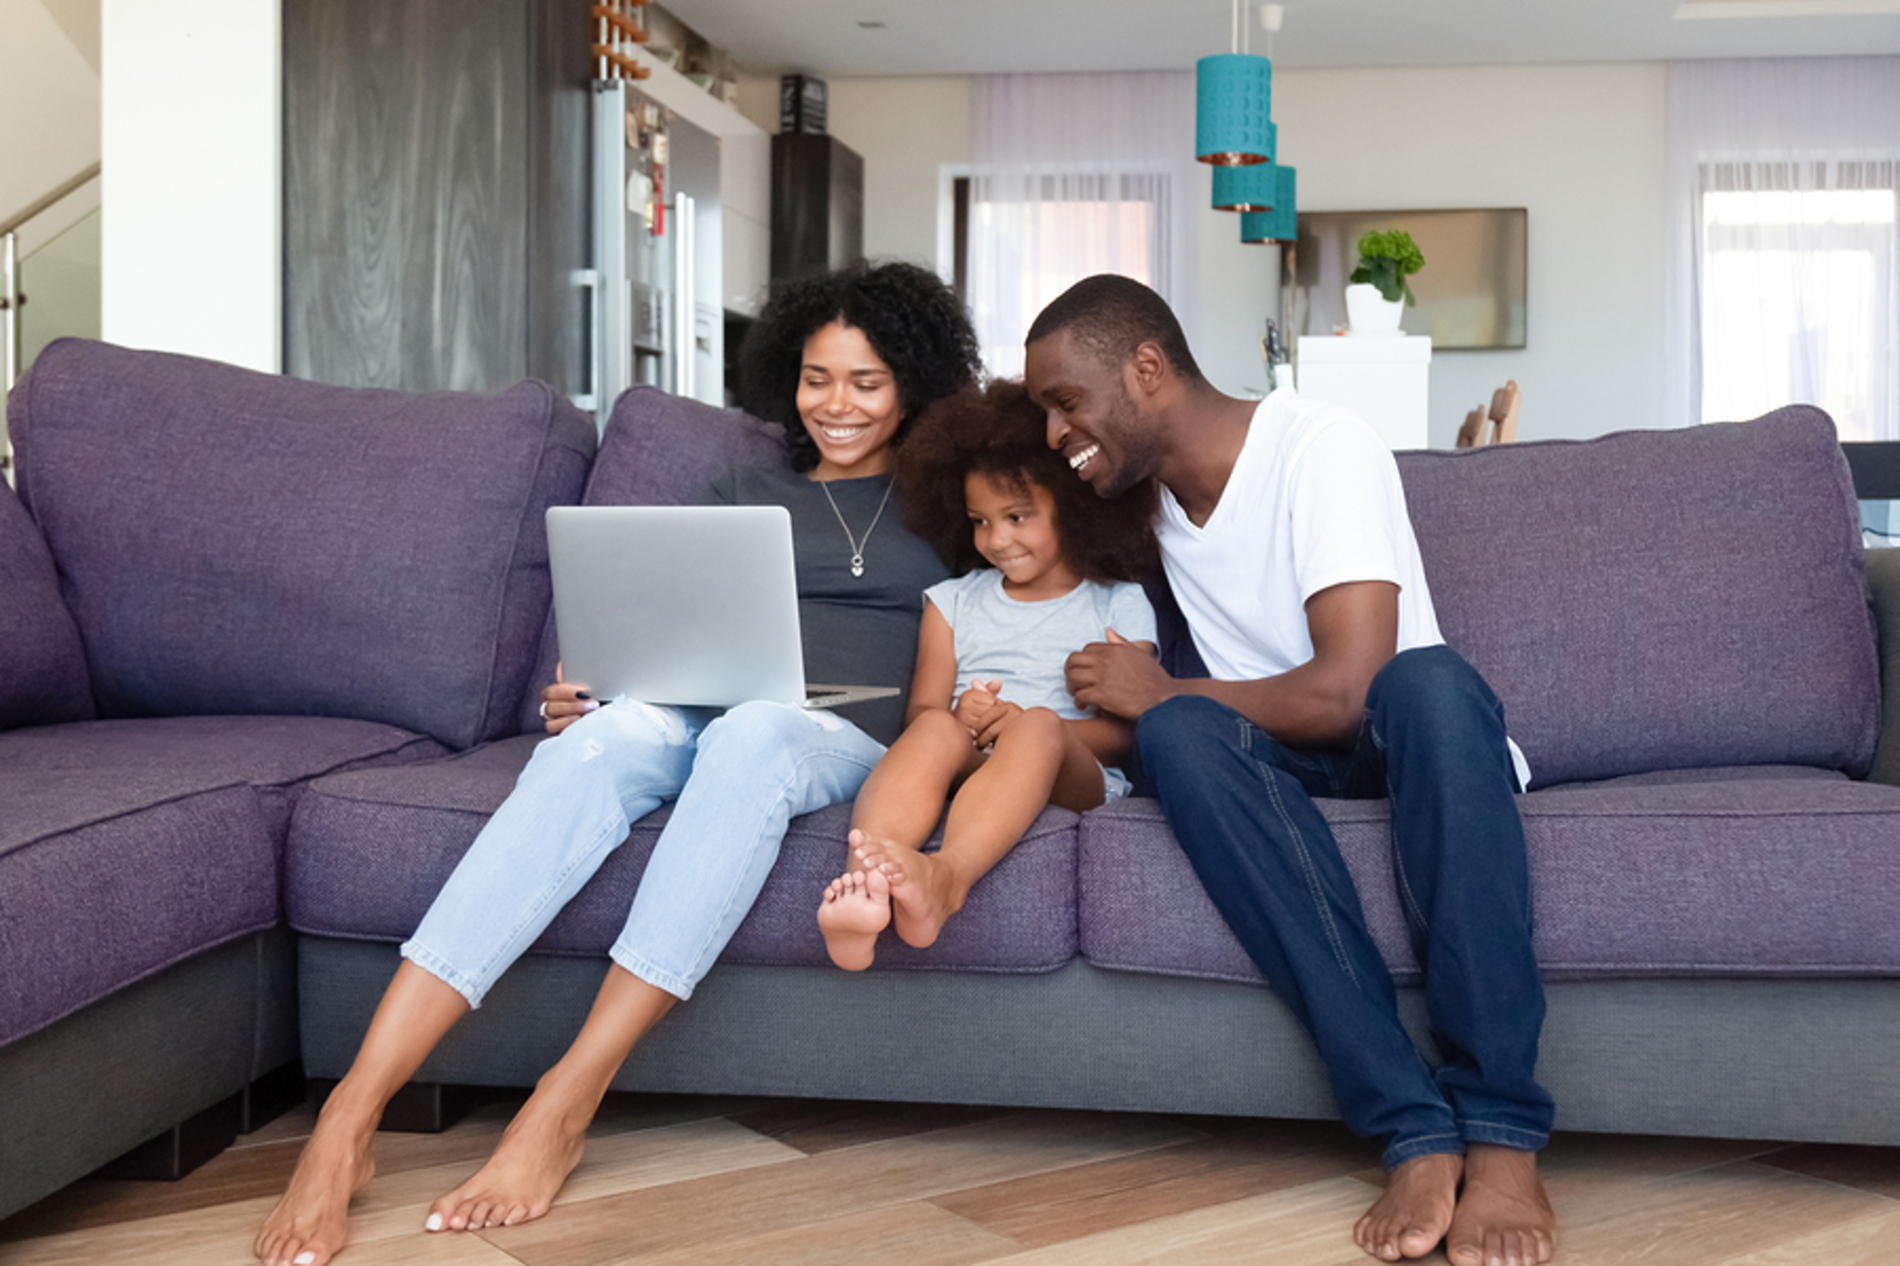 Happy family sitting on a couch looking at a laptop together.